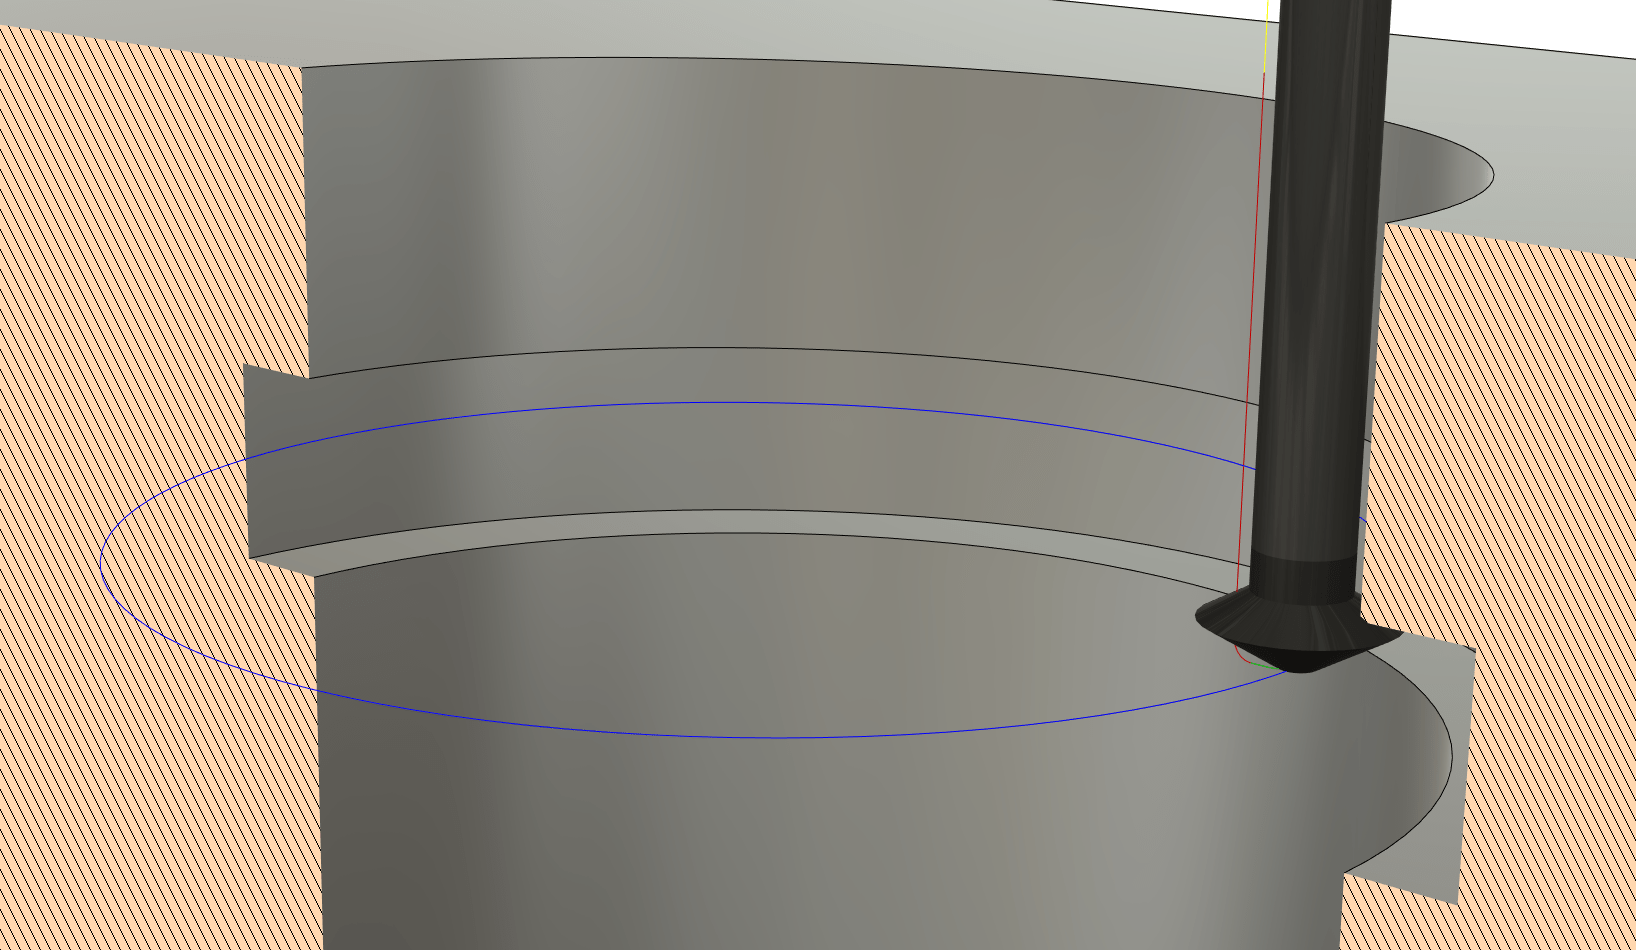 Undercutting Backside Chamfers in Fusion 360